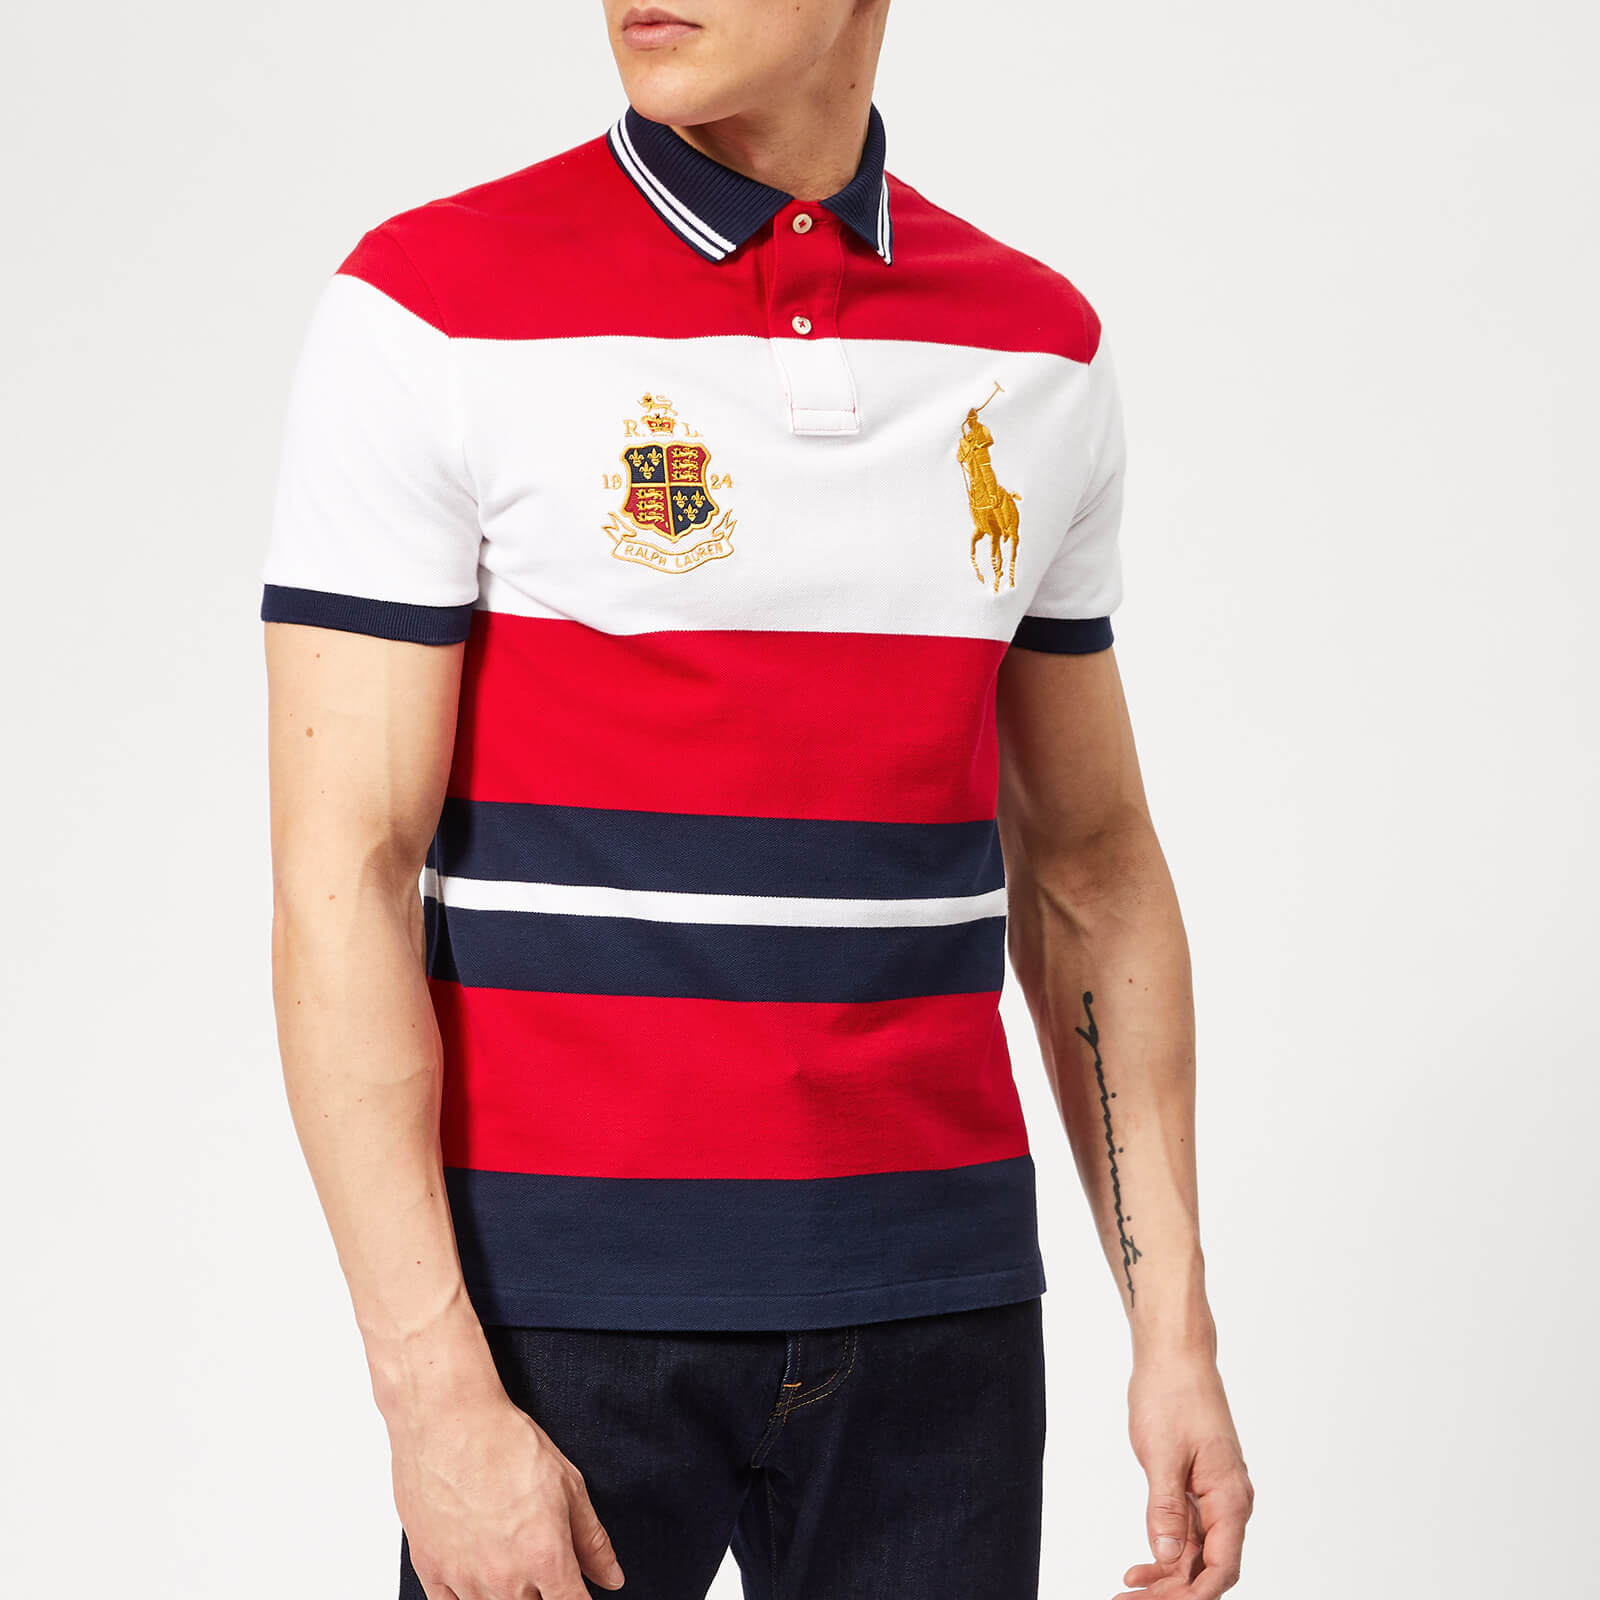 ccbf523a8b Polo Ralph Lauren Men's Crest/Horse Pique Polo Shirt - Rl 2000 Red Multi -  Free UK Delivery over £50